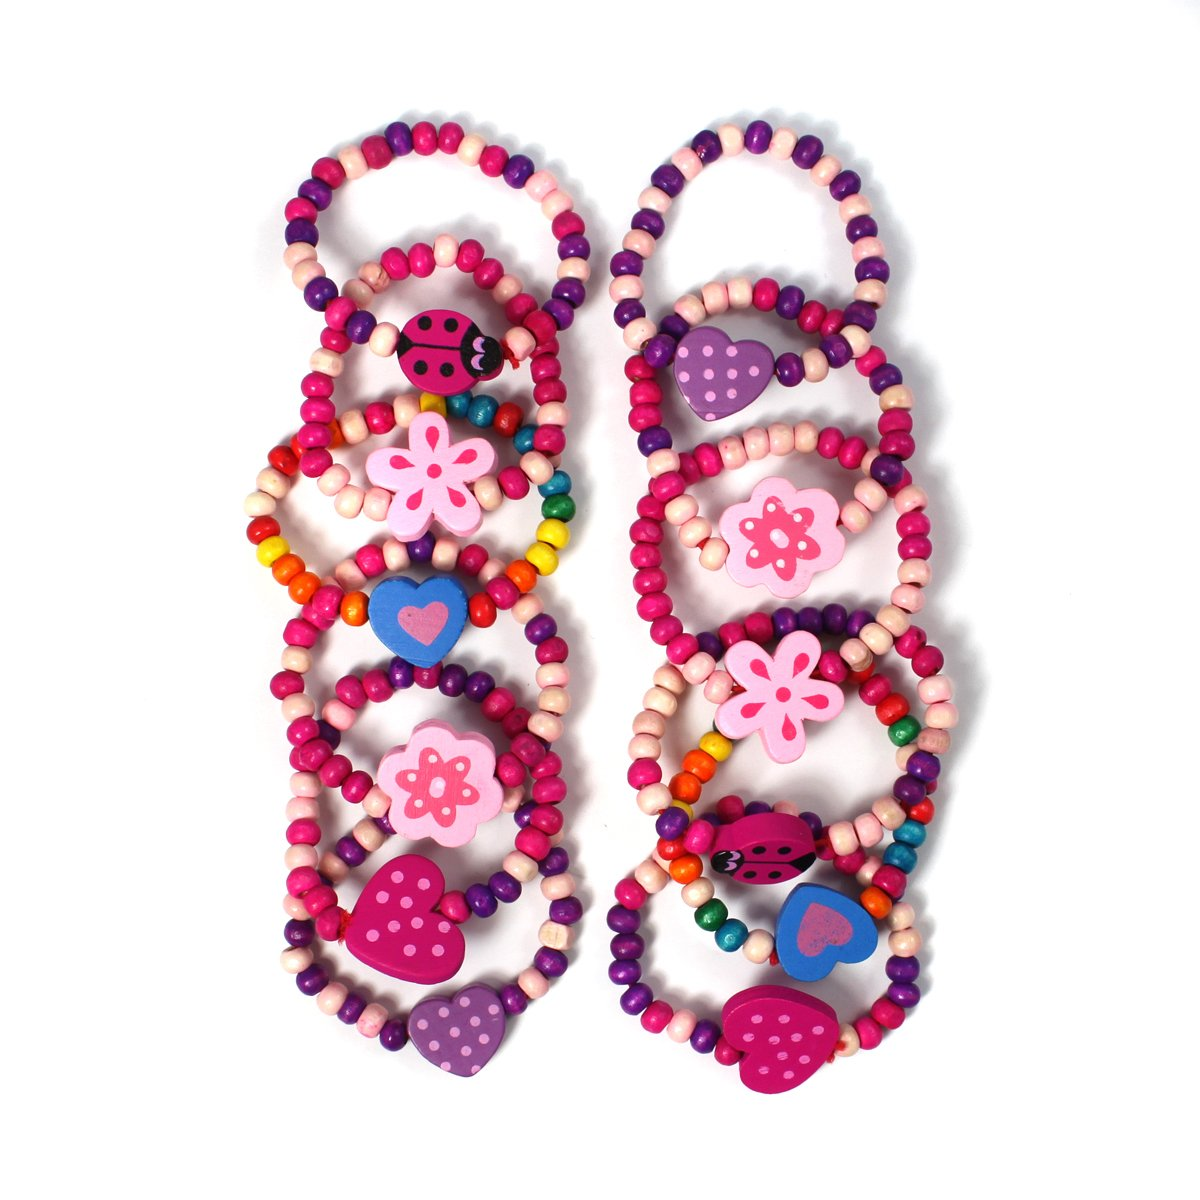 12 Bracelets Colourful Wooden Jewellery Girls Bracelets Christmas and Birthday Party Bag Stocking Filler Loot Stands Out Ltd 12B